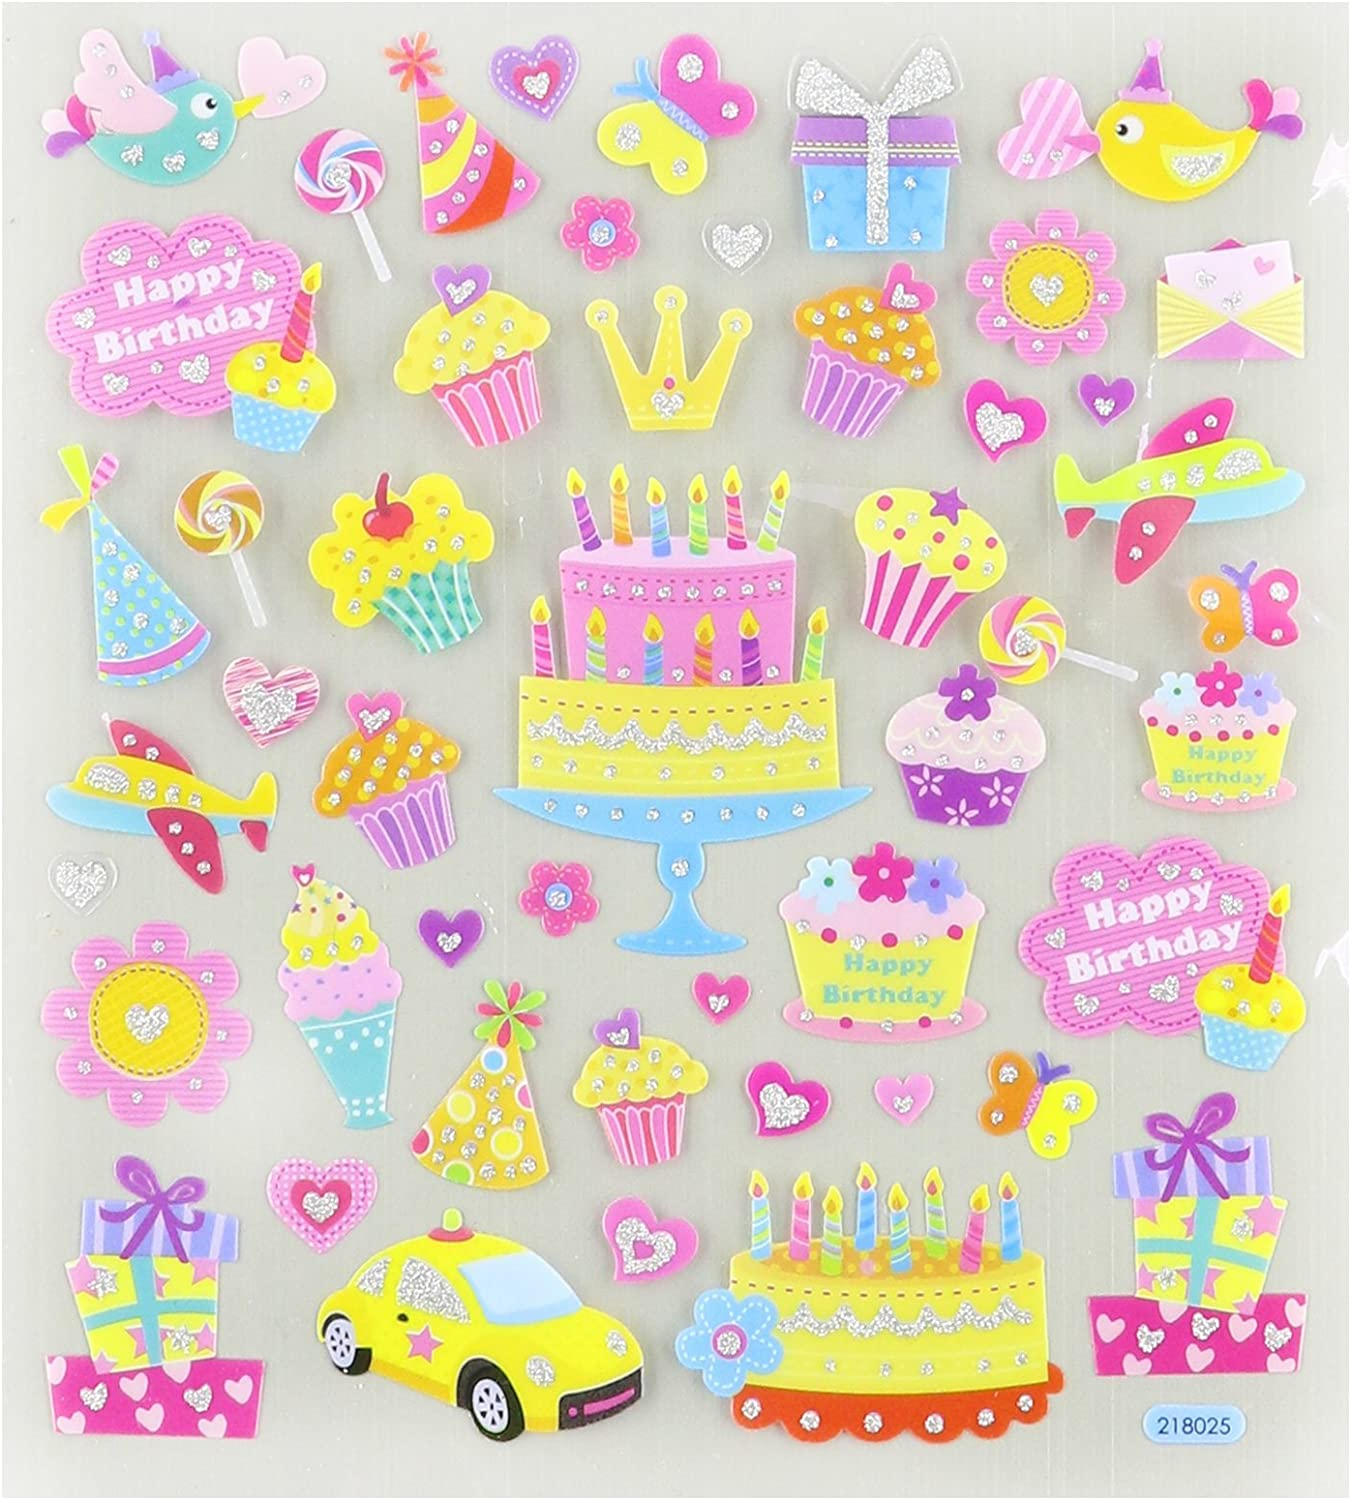 Tattoo King Multi-Colored Stickers-Birthday Party